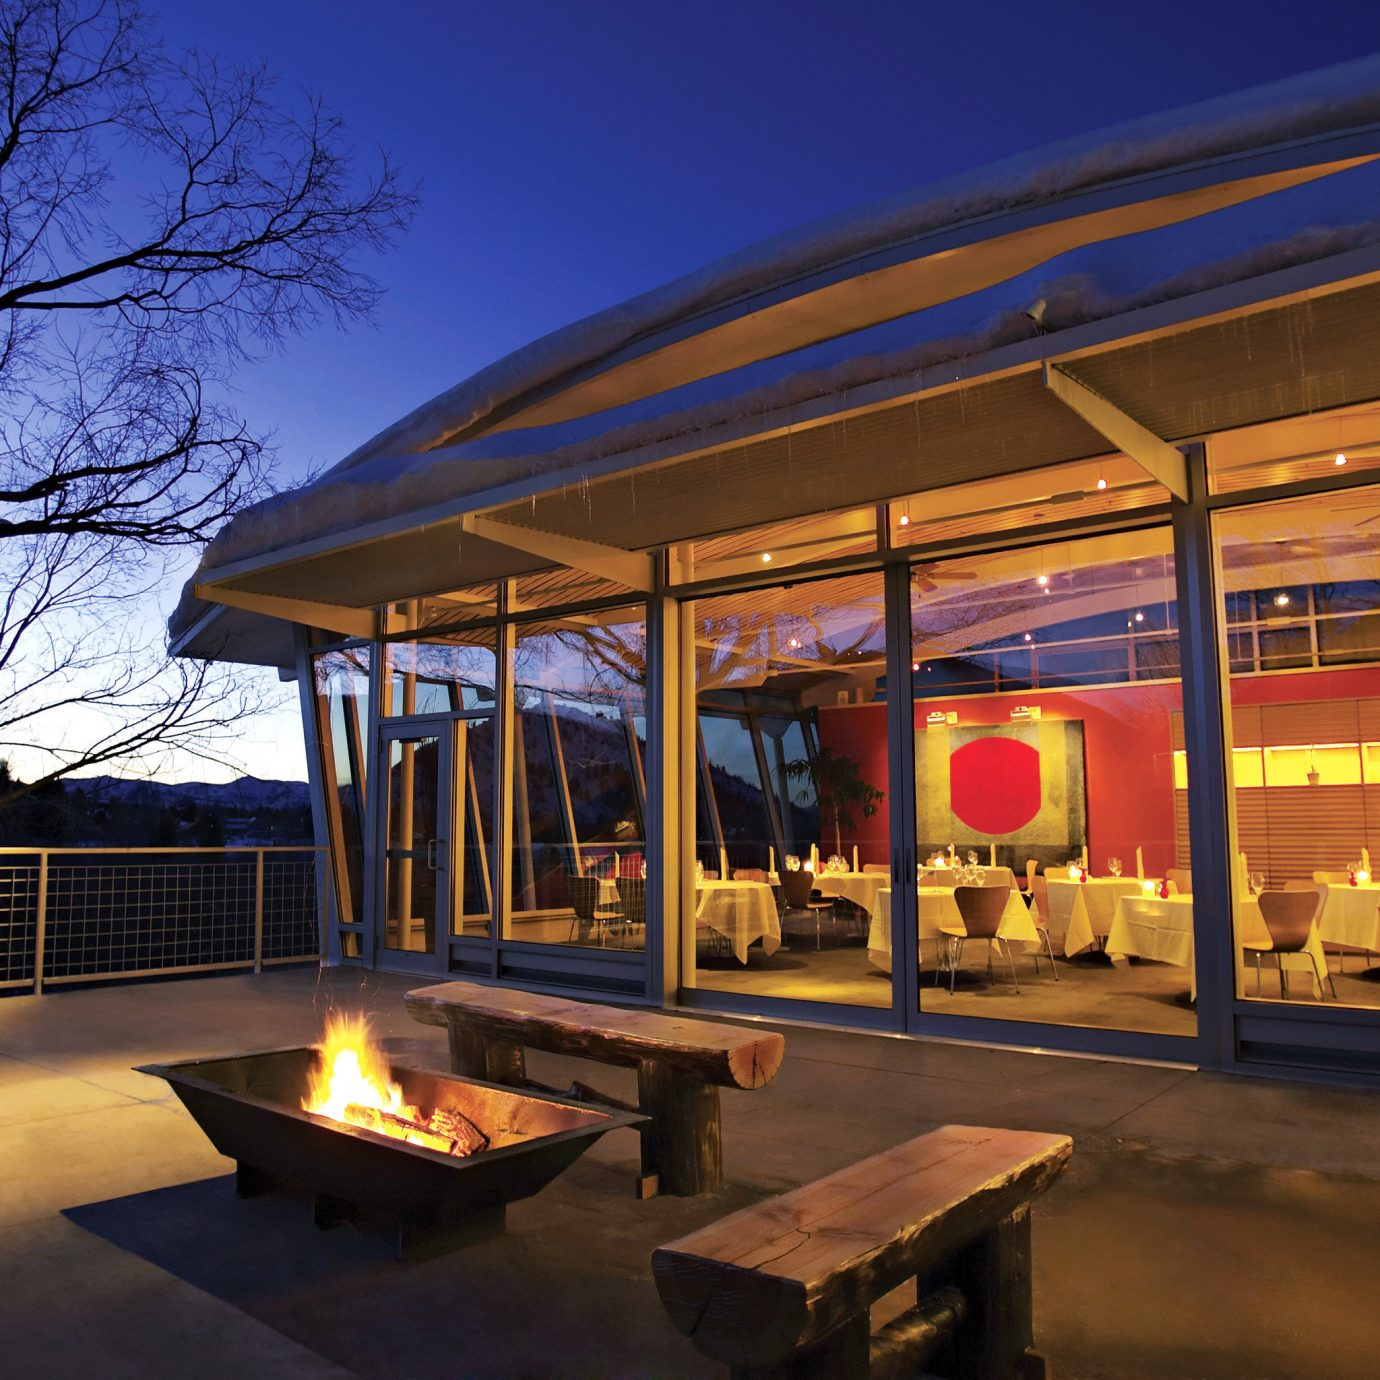 Architecture Exterior Fireplace Grounds Mountains Resort sky